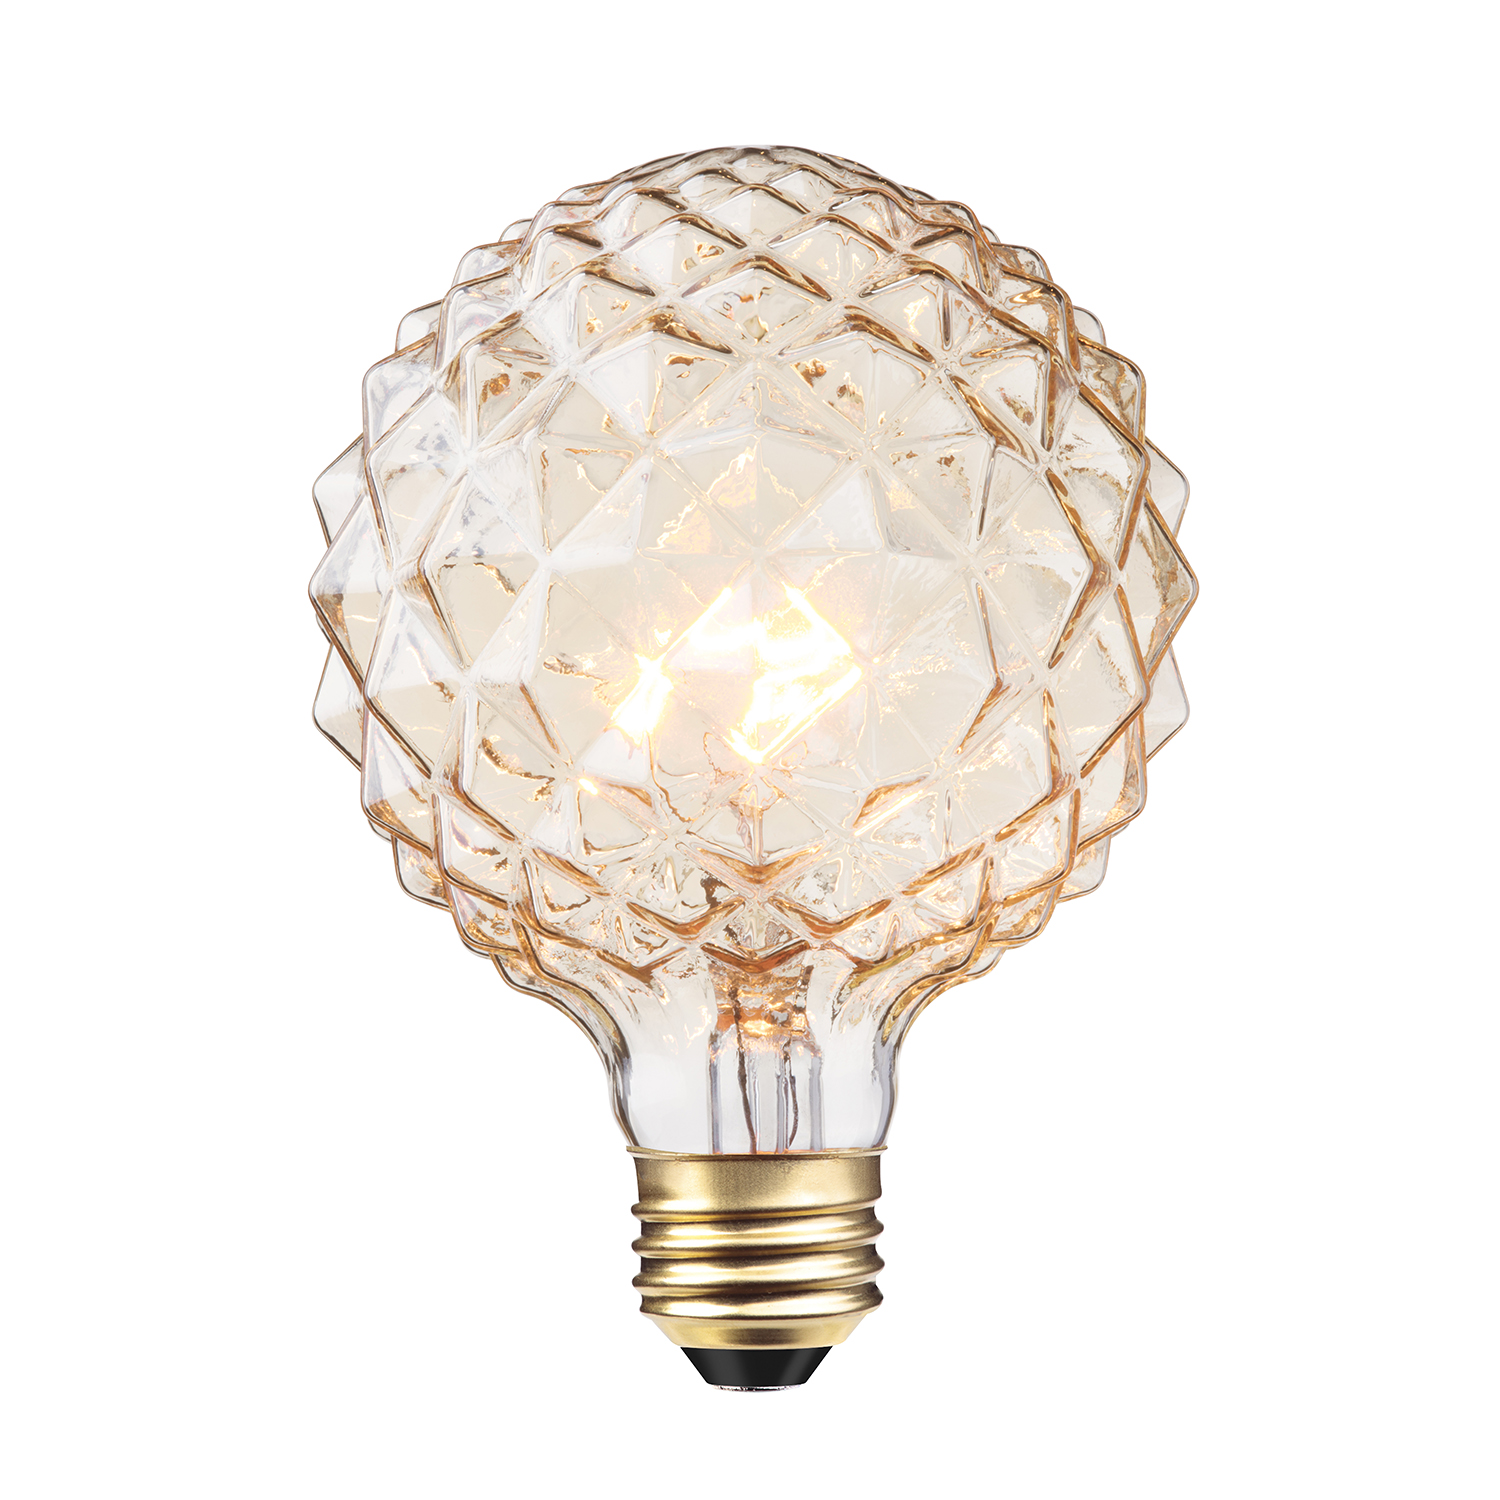 light flat update bulb phillips the philips cost bulbs flattens a redesign lightbulb led pop